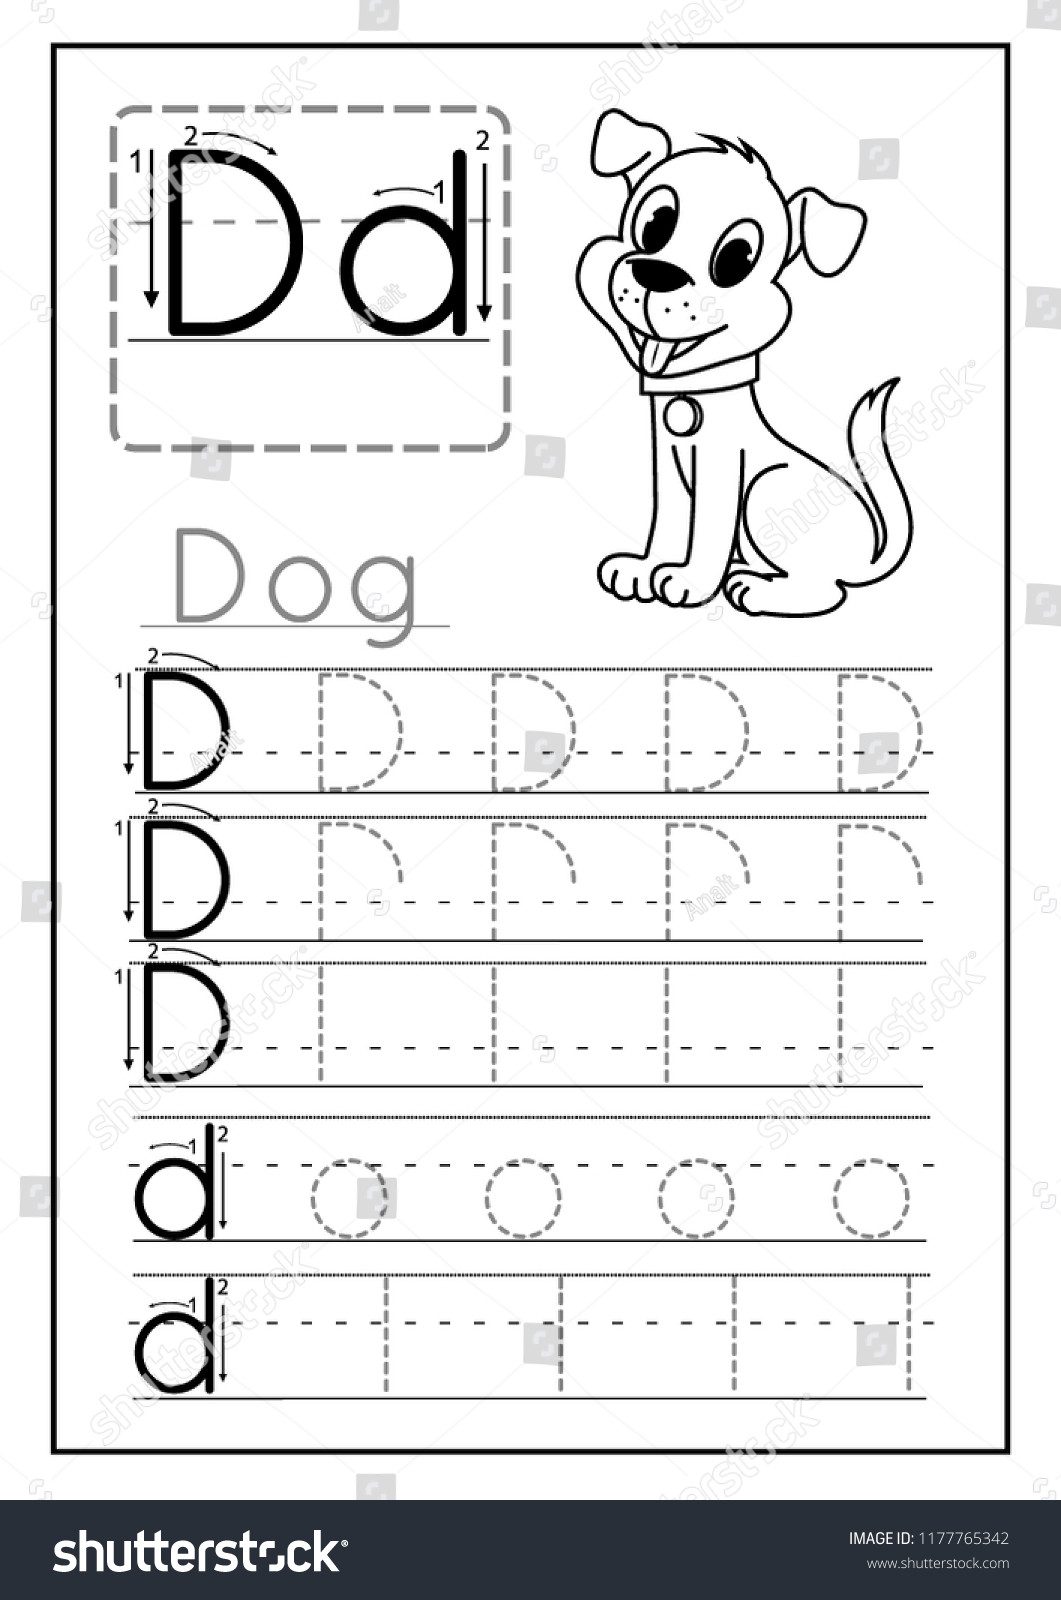 Letter D Worksheet Preschool Writing Practice Letter D Printable Worksheet Stock Vector